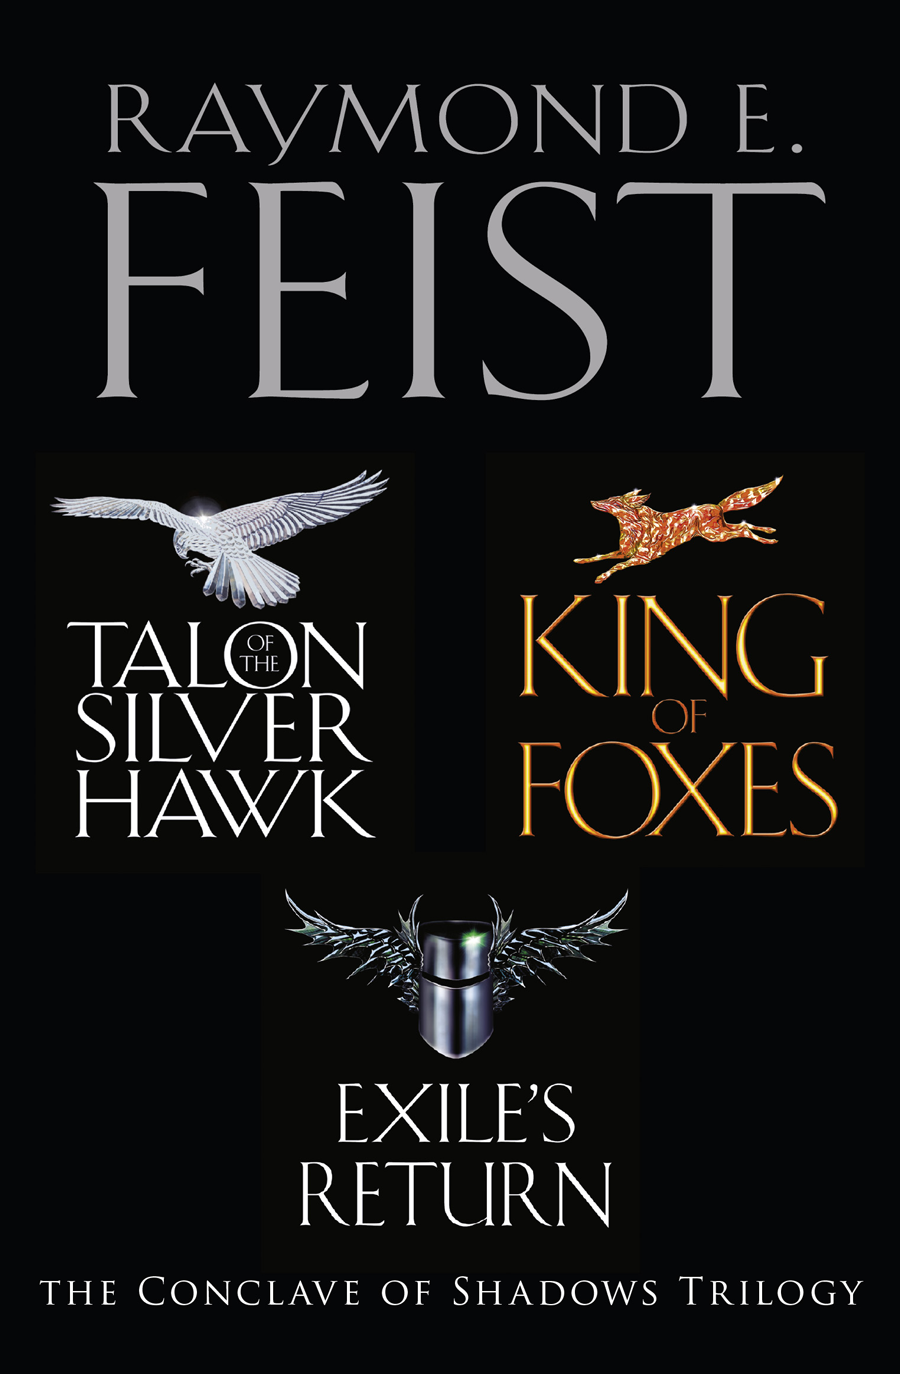 Raymond E. Feist The Complete Conclave of Shadows Trilogy: Talon of the Silver Hawk, King of Foxes, Exile's Return the sea hawk